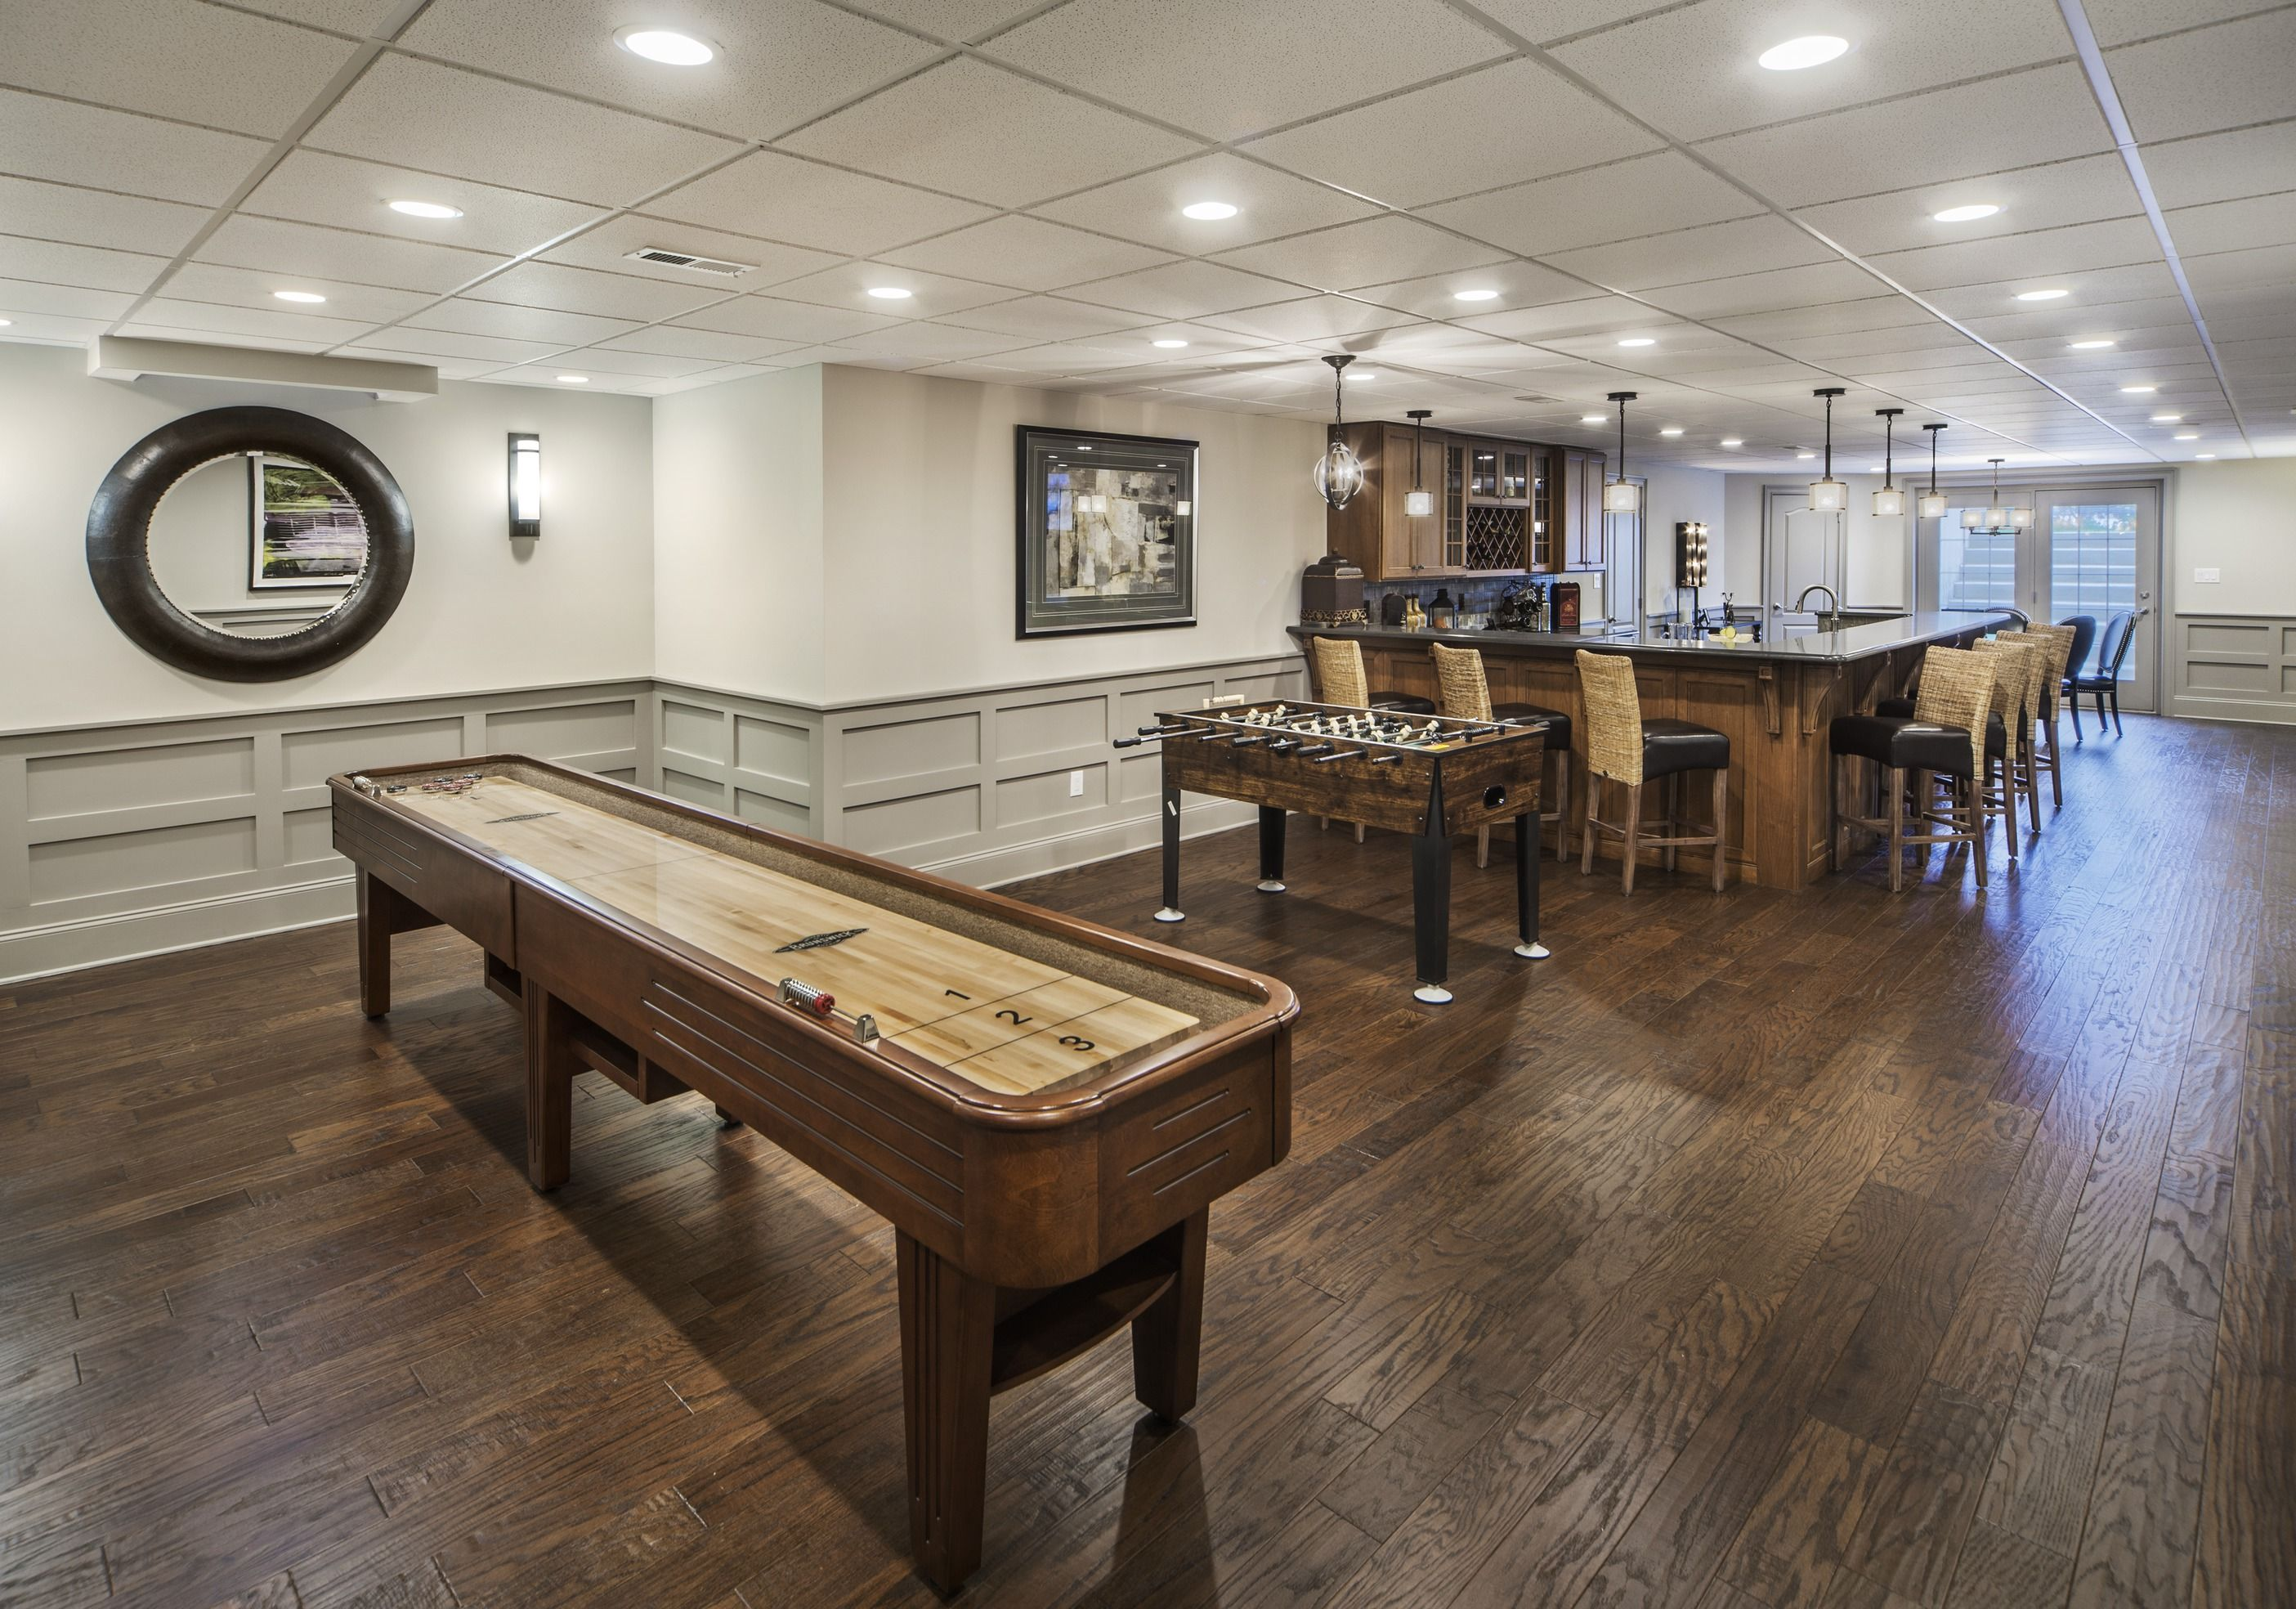 Design Your Own Bedroom Game Nothing Beats A Great Game Room Coupled With An Elegant Bar Area